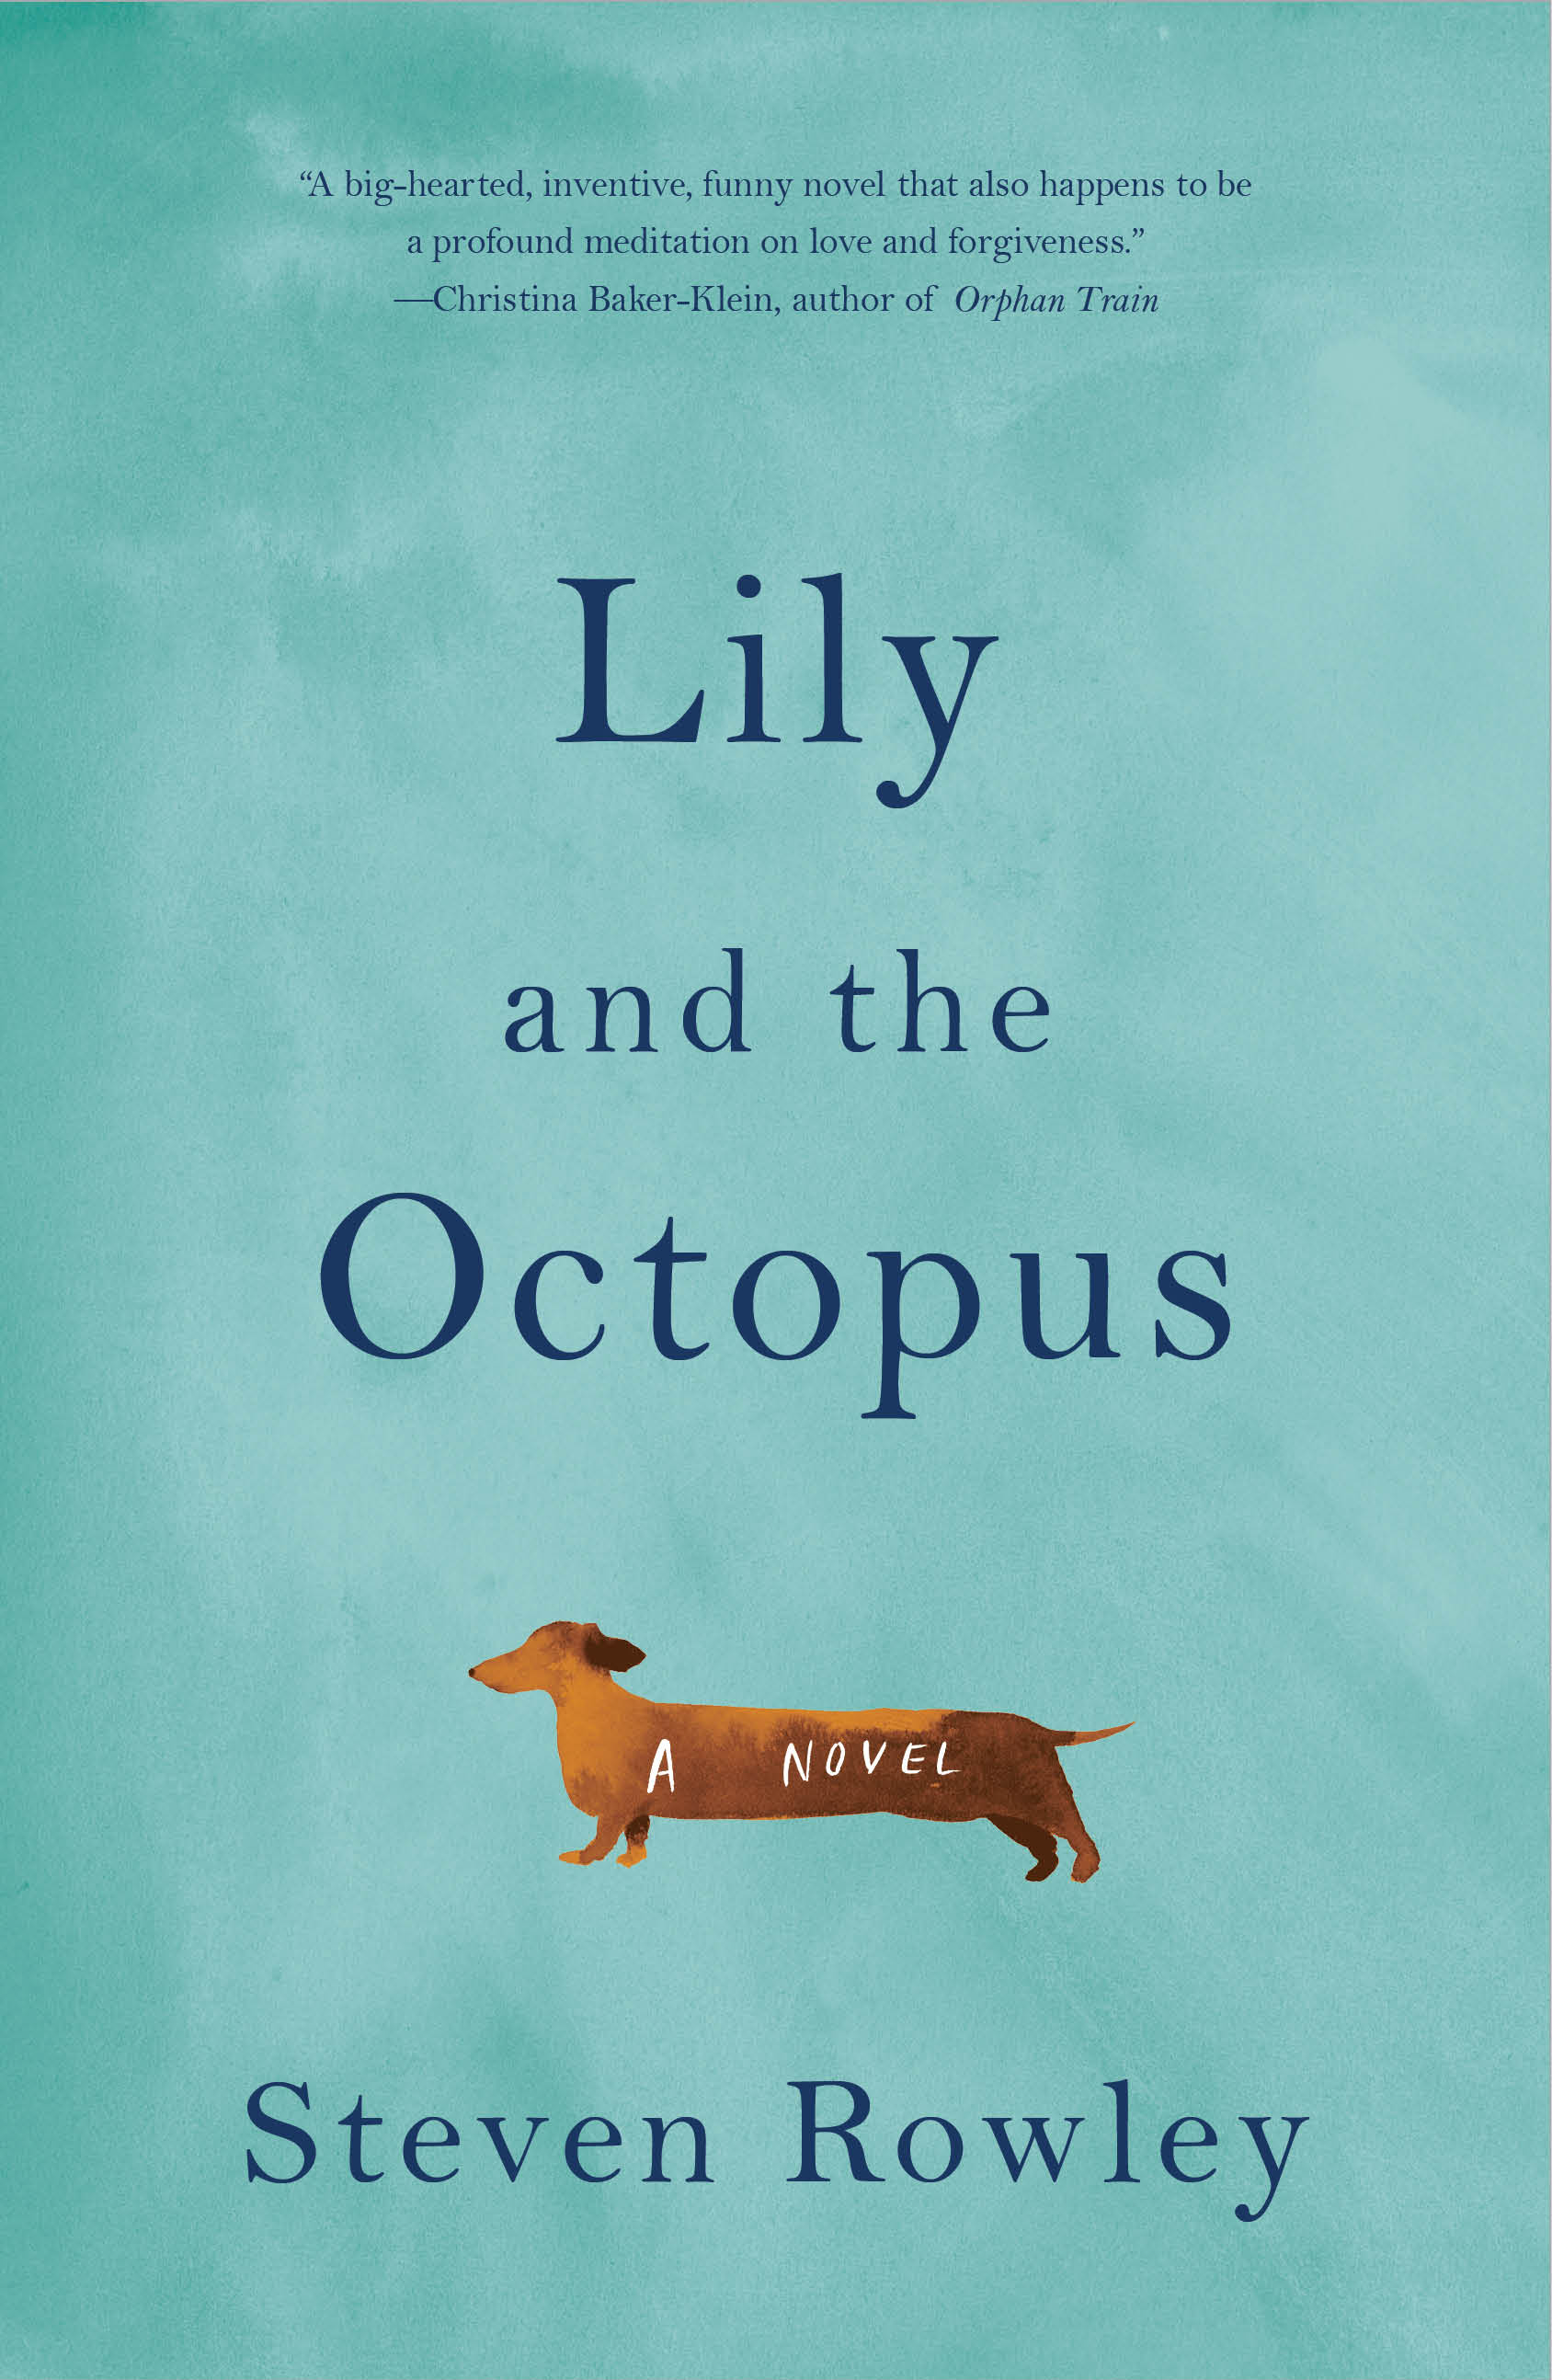 Lily and the Octopus - Ted—a gay, single, struggling writer is stuck: unable to open himself up to intimacy except through the steadfast companionship of Lily, his elderly dachshund. When Lily's health is compromised, Ted vows to save her by any means necessary. By turns hilarious and poignant, an adventure with spins into magic realism and beautifully evoked truths of loss and longing, Lily and the Octopus reminds us how it feels to love fiercely, how difficult it can be to let go, and how the fight for those we love is the greatest fight of all.